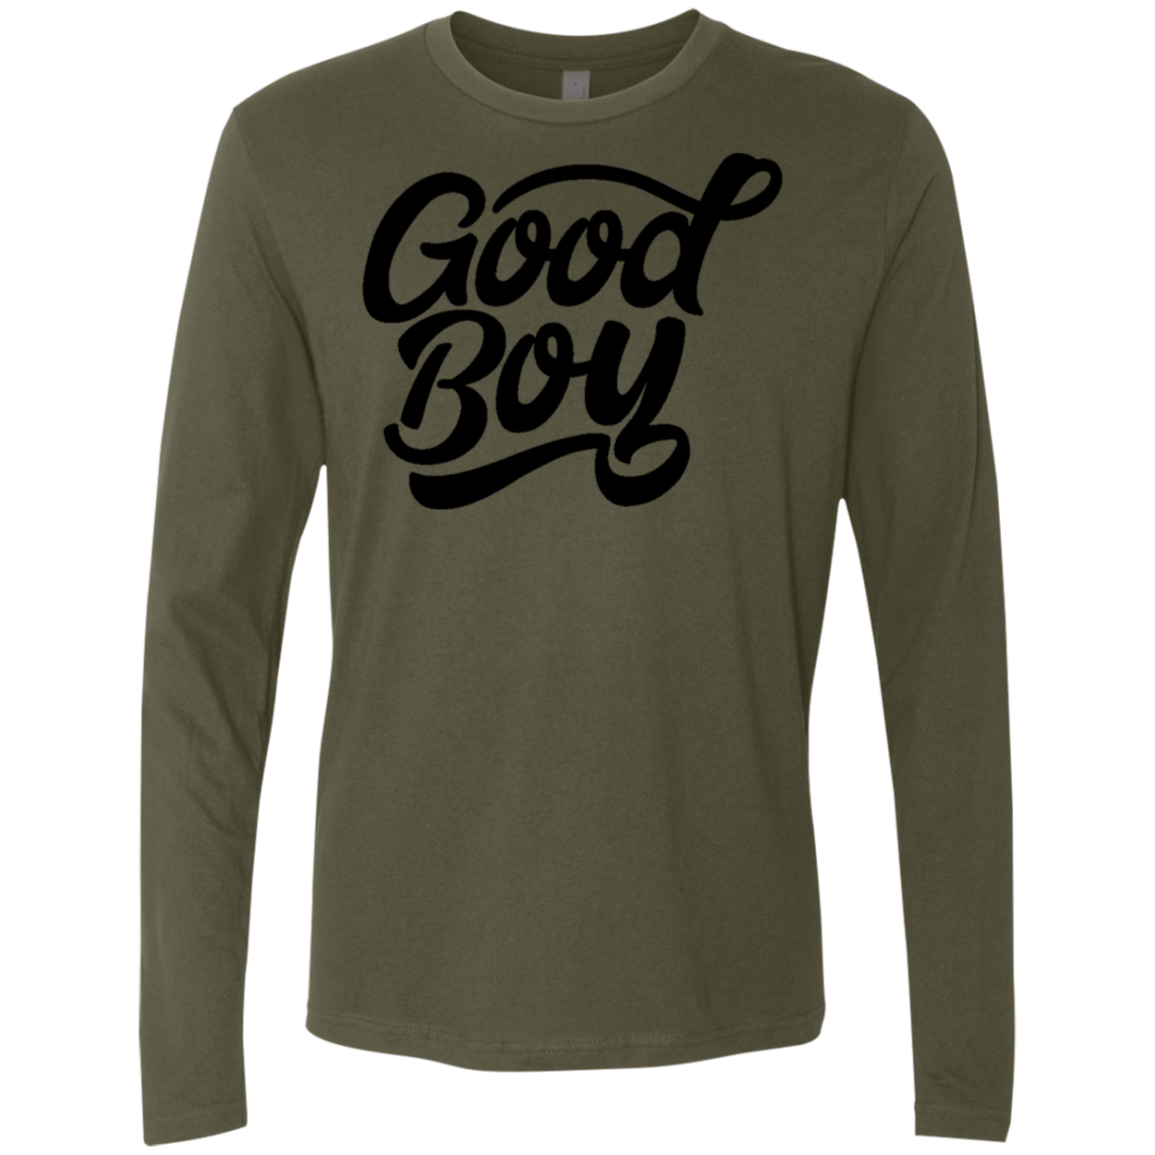 Good Boy Men's Long Sleeve Tee